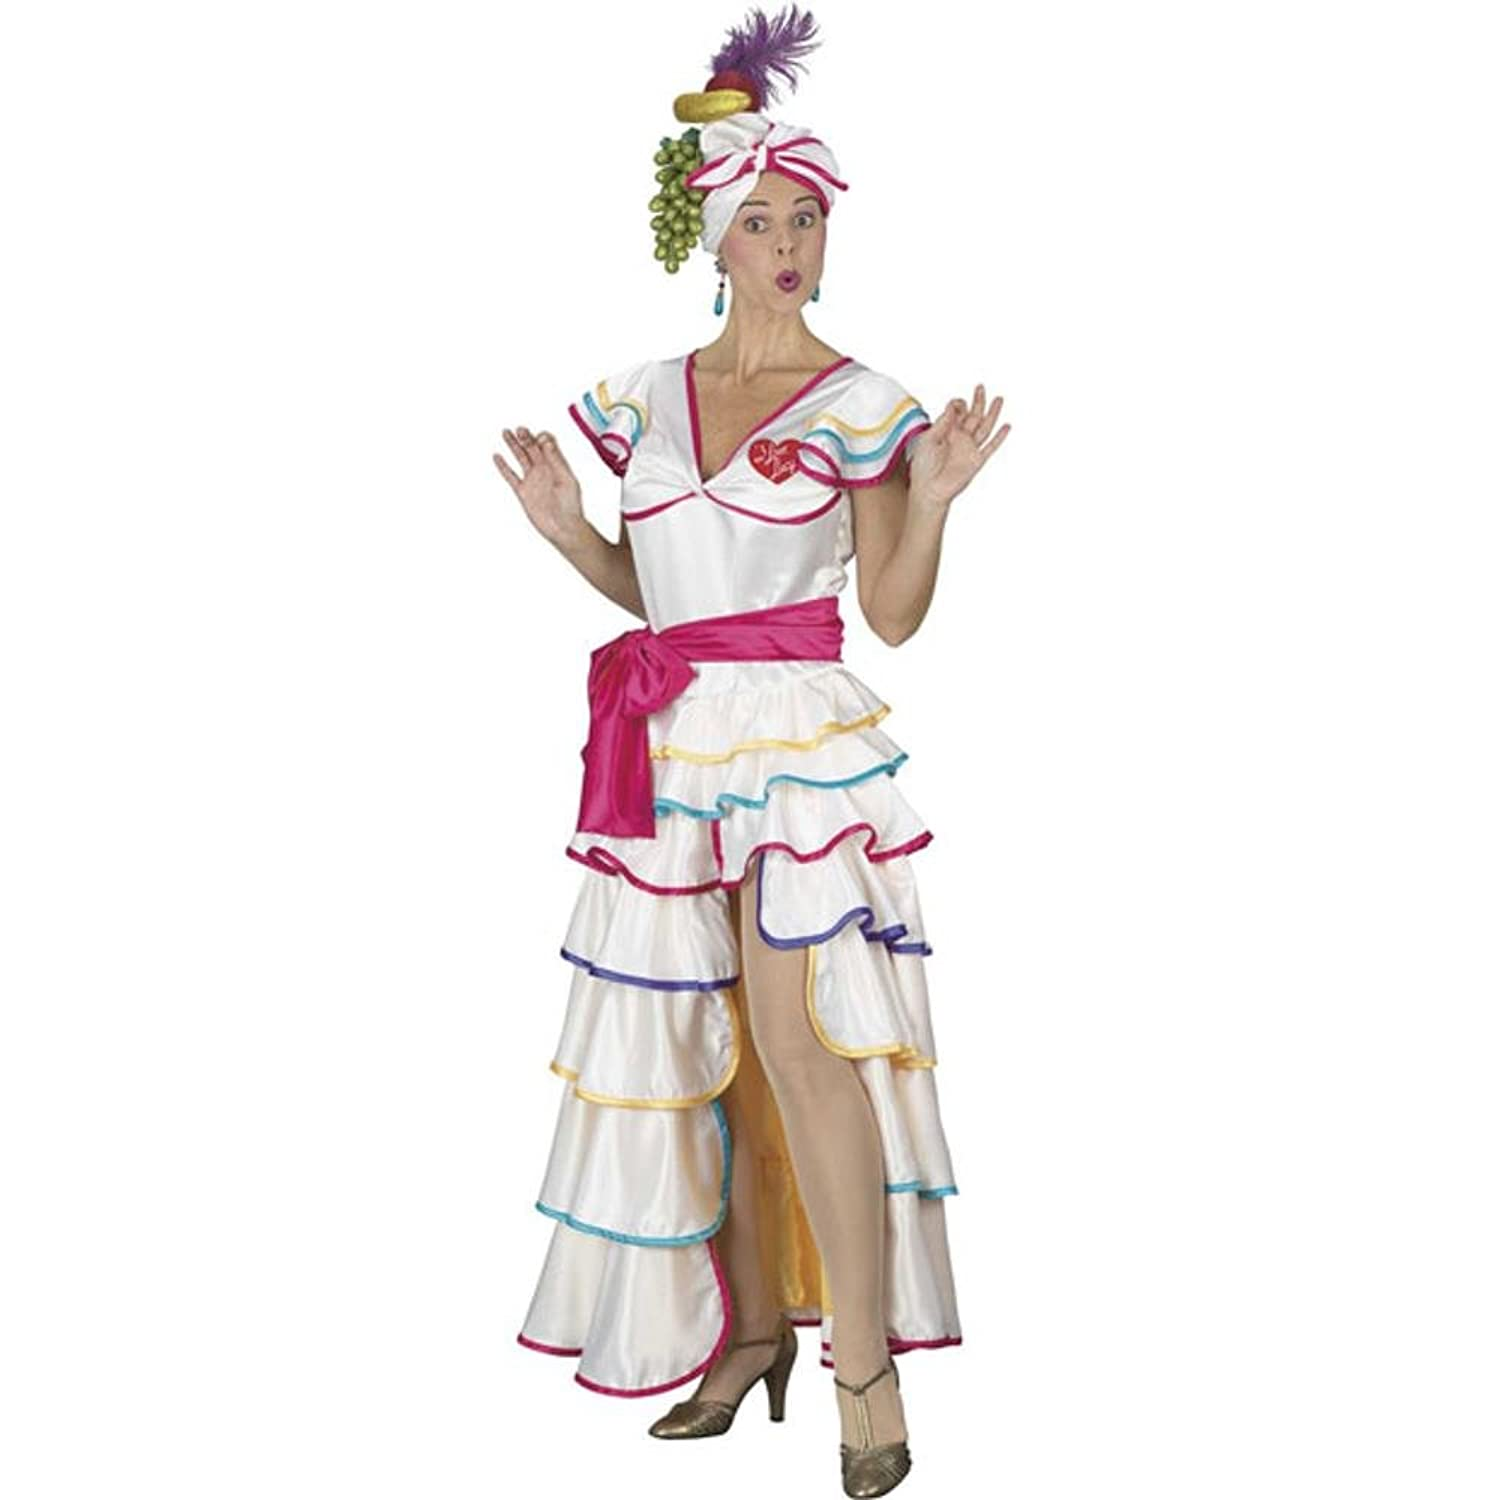 I Love Lucy Halloween Costumes - Best Costumes for Halloween 71cd5ce75b